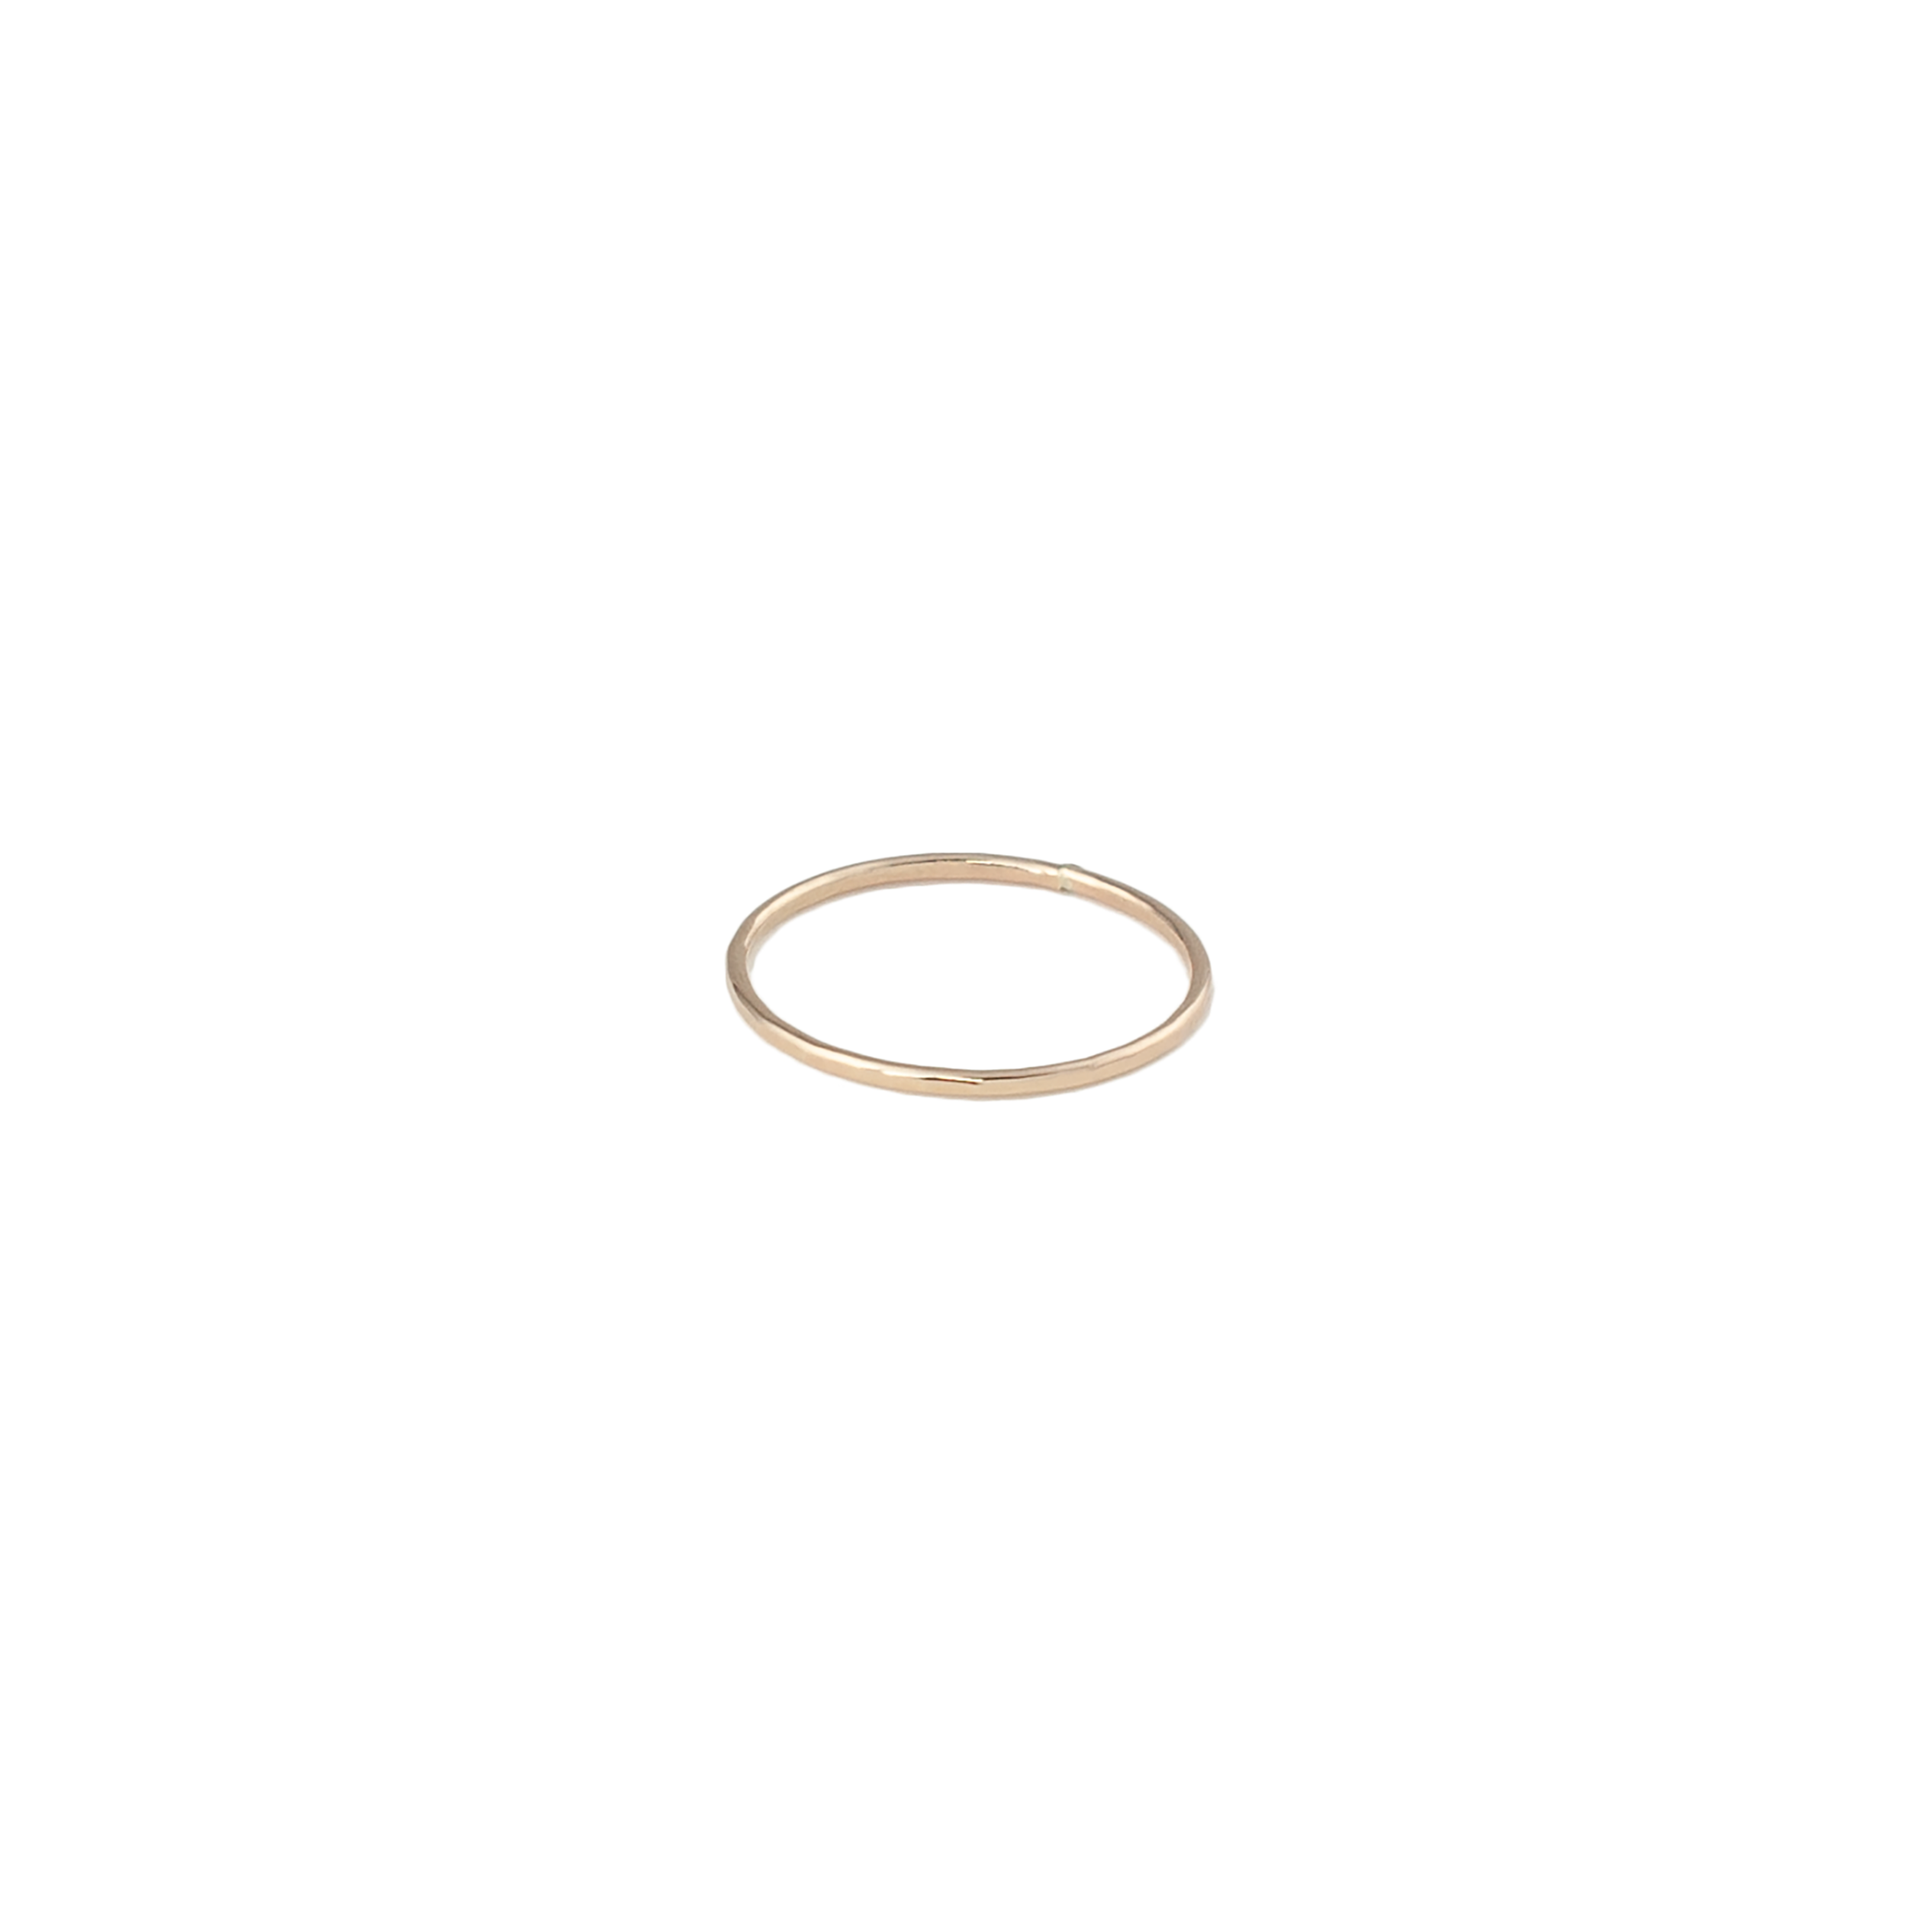 Gold fill stacking rings